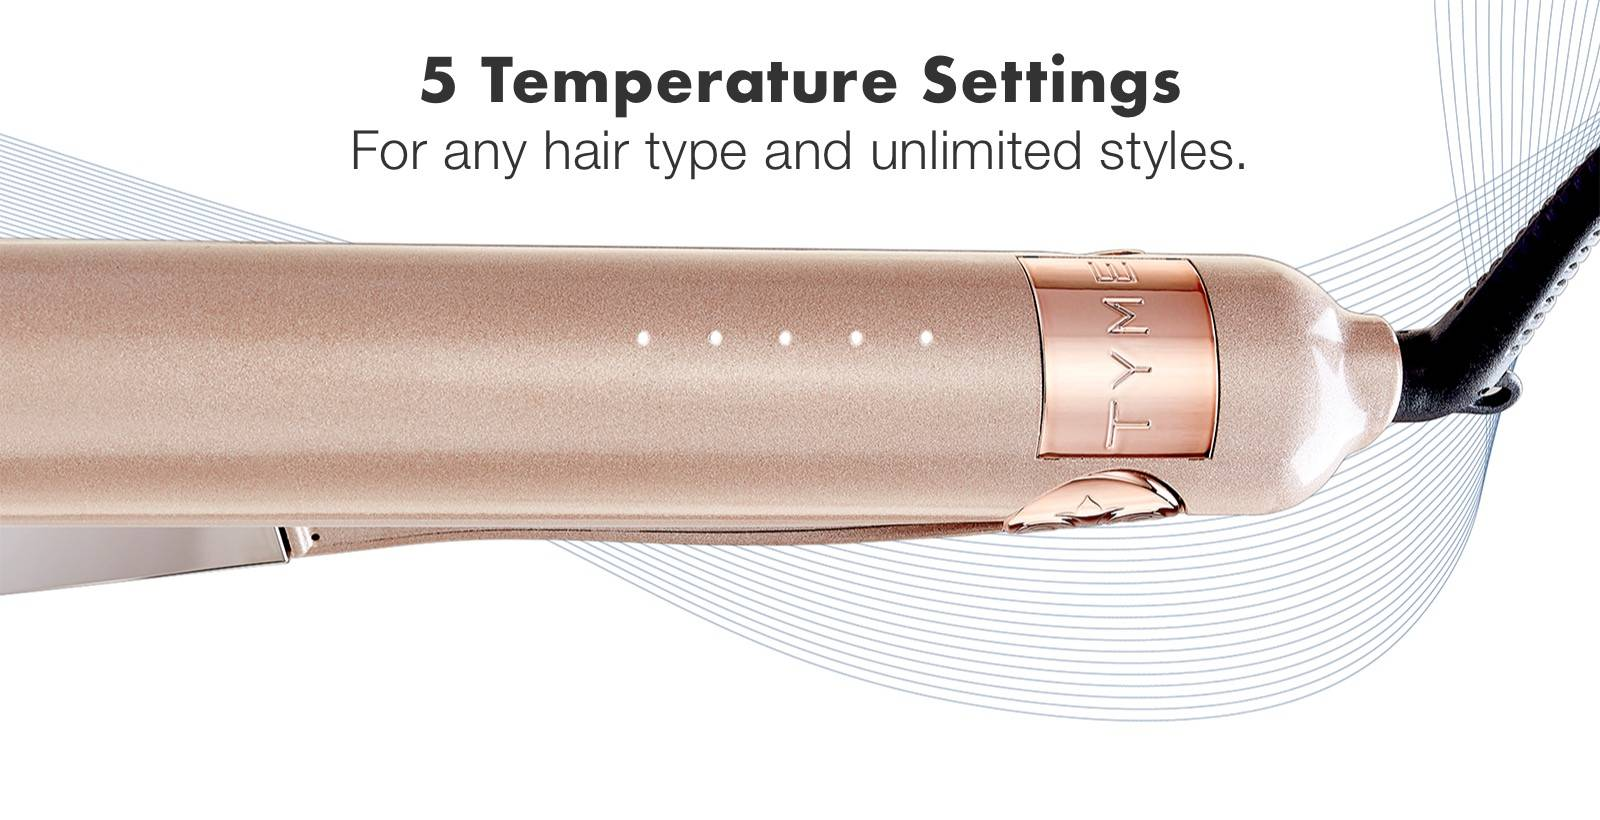 The TYME Iron has five heat settings that are indicated with LED's.